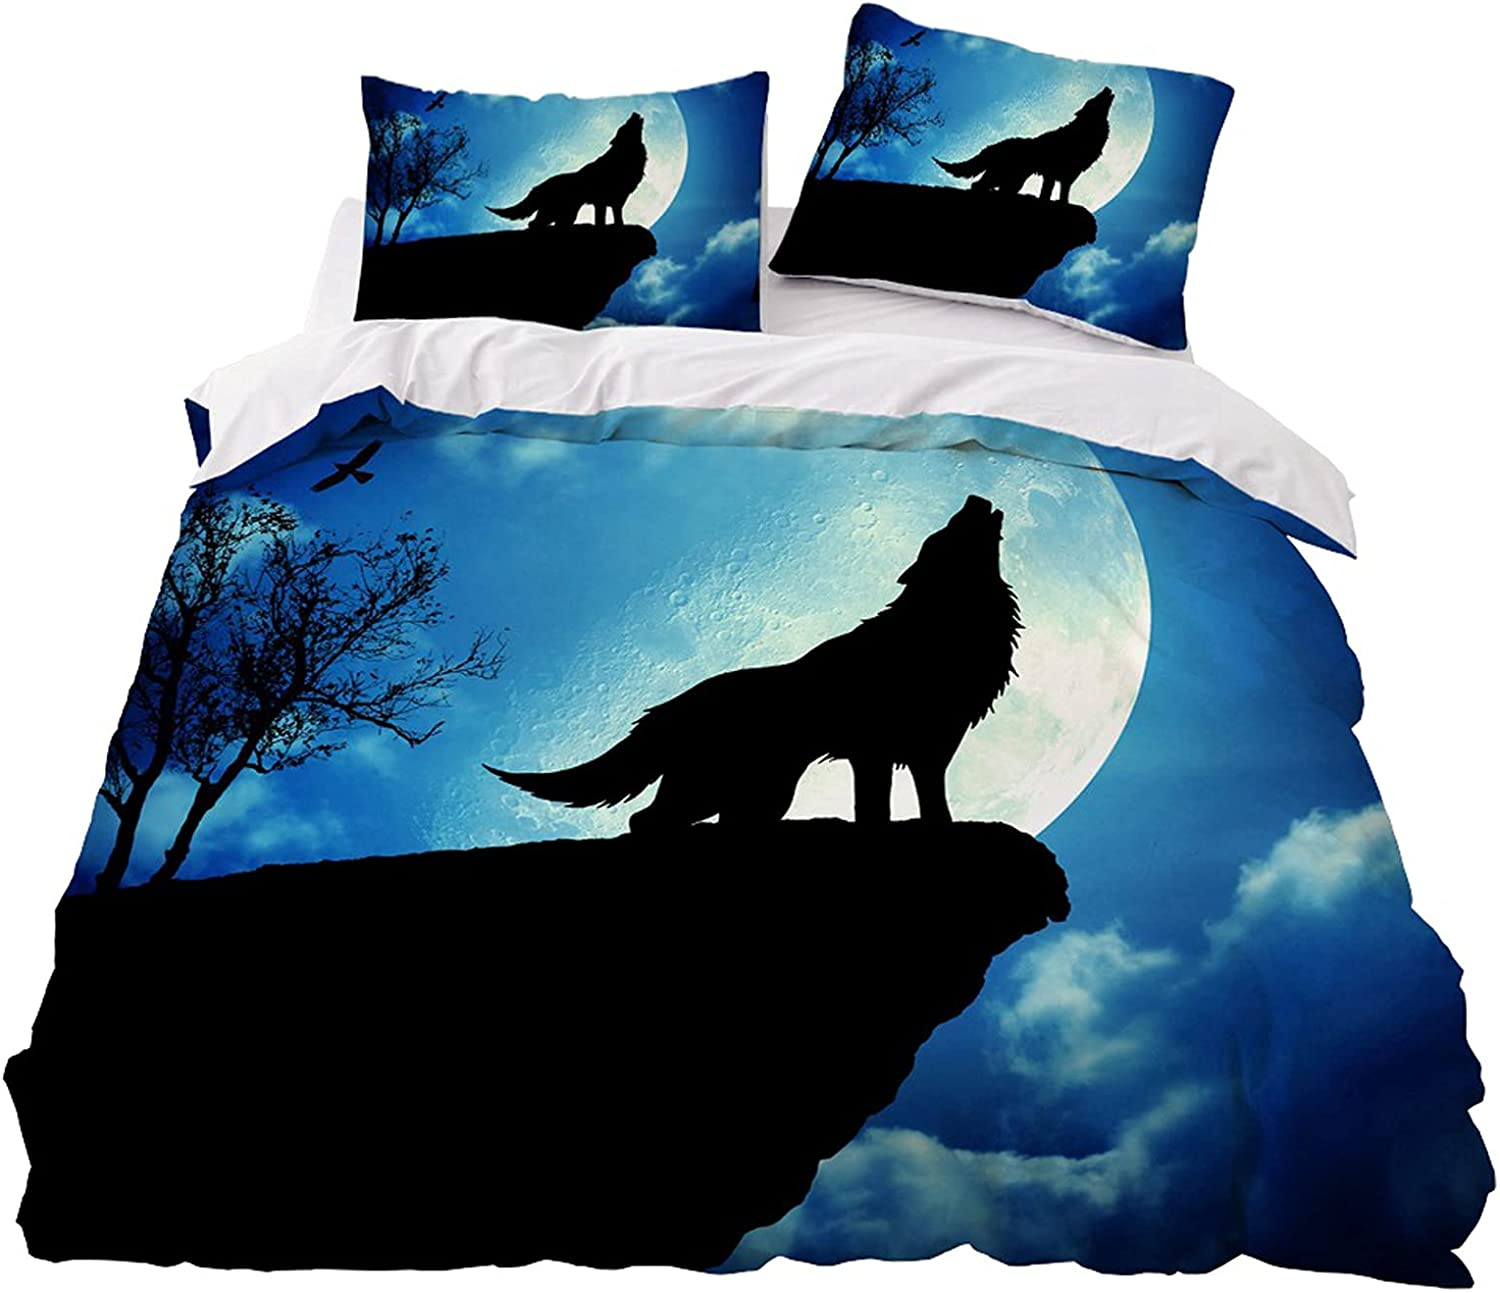 Galaxy Wolf Duvet Cover Sets 3D Animal Super beauty product restock quality top! Our shop most popular Ult Set Kids Bedding